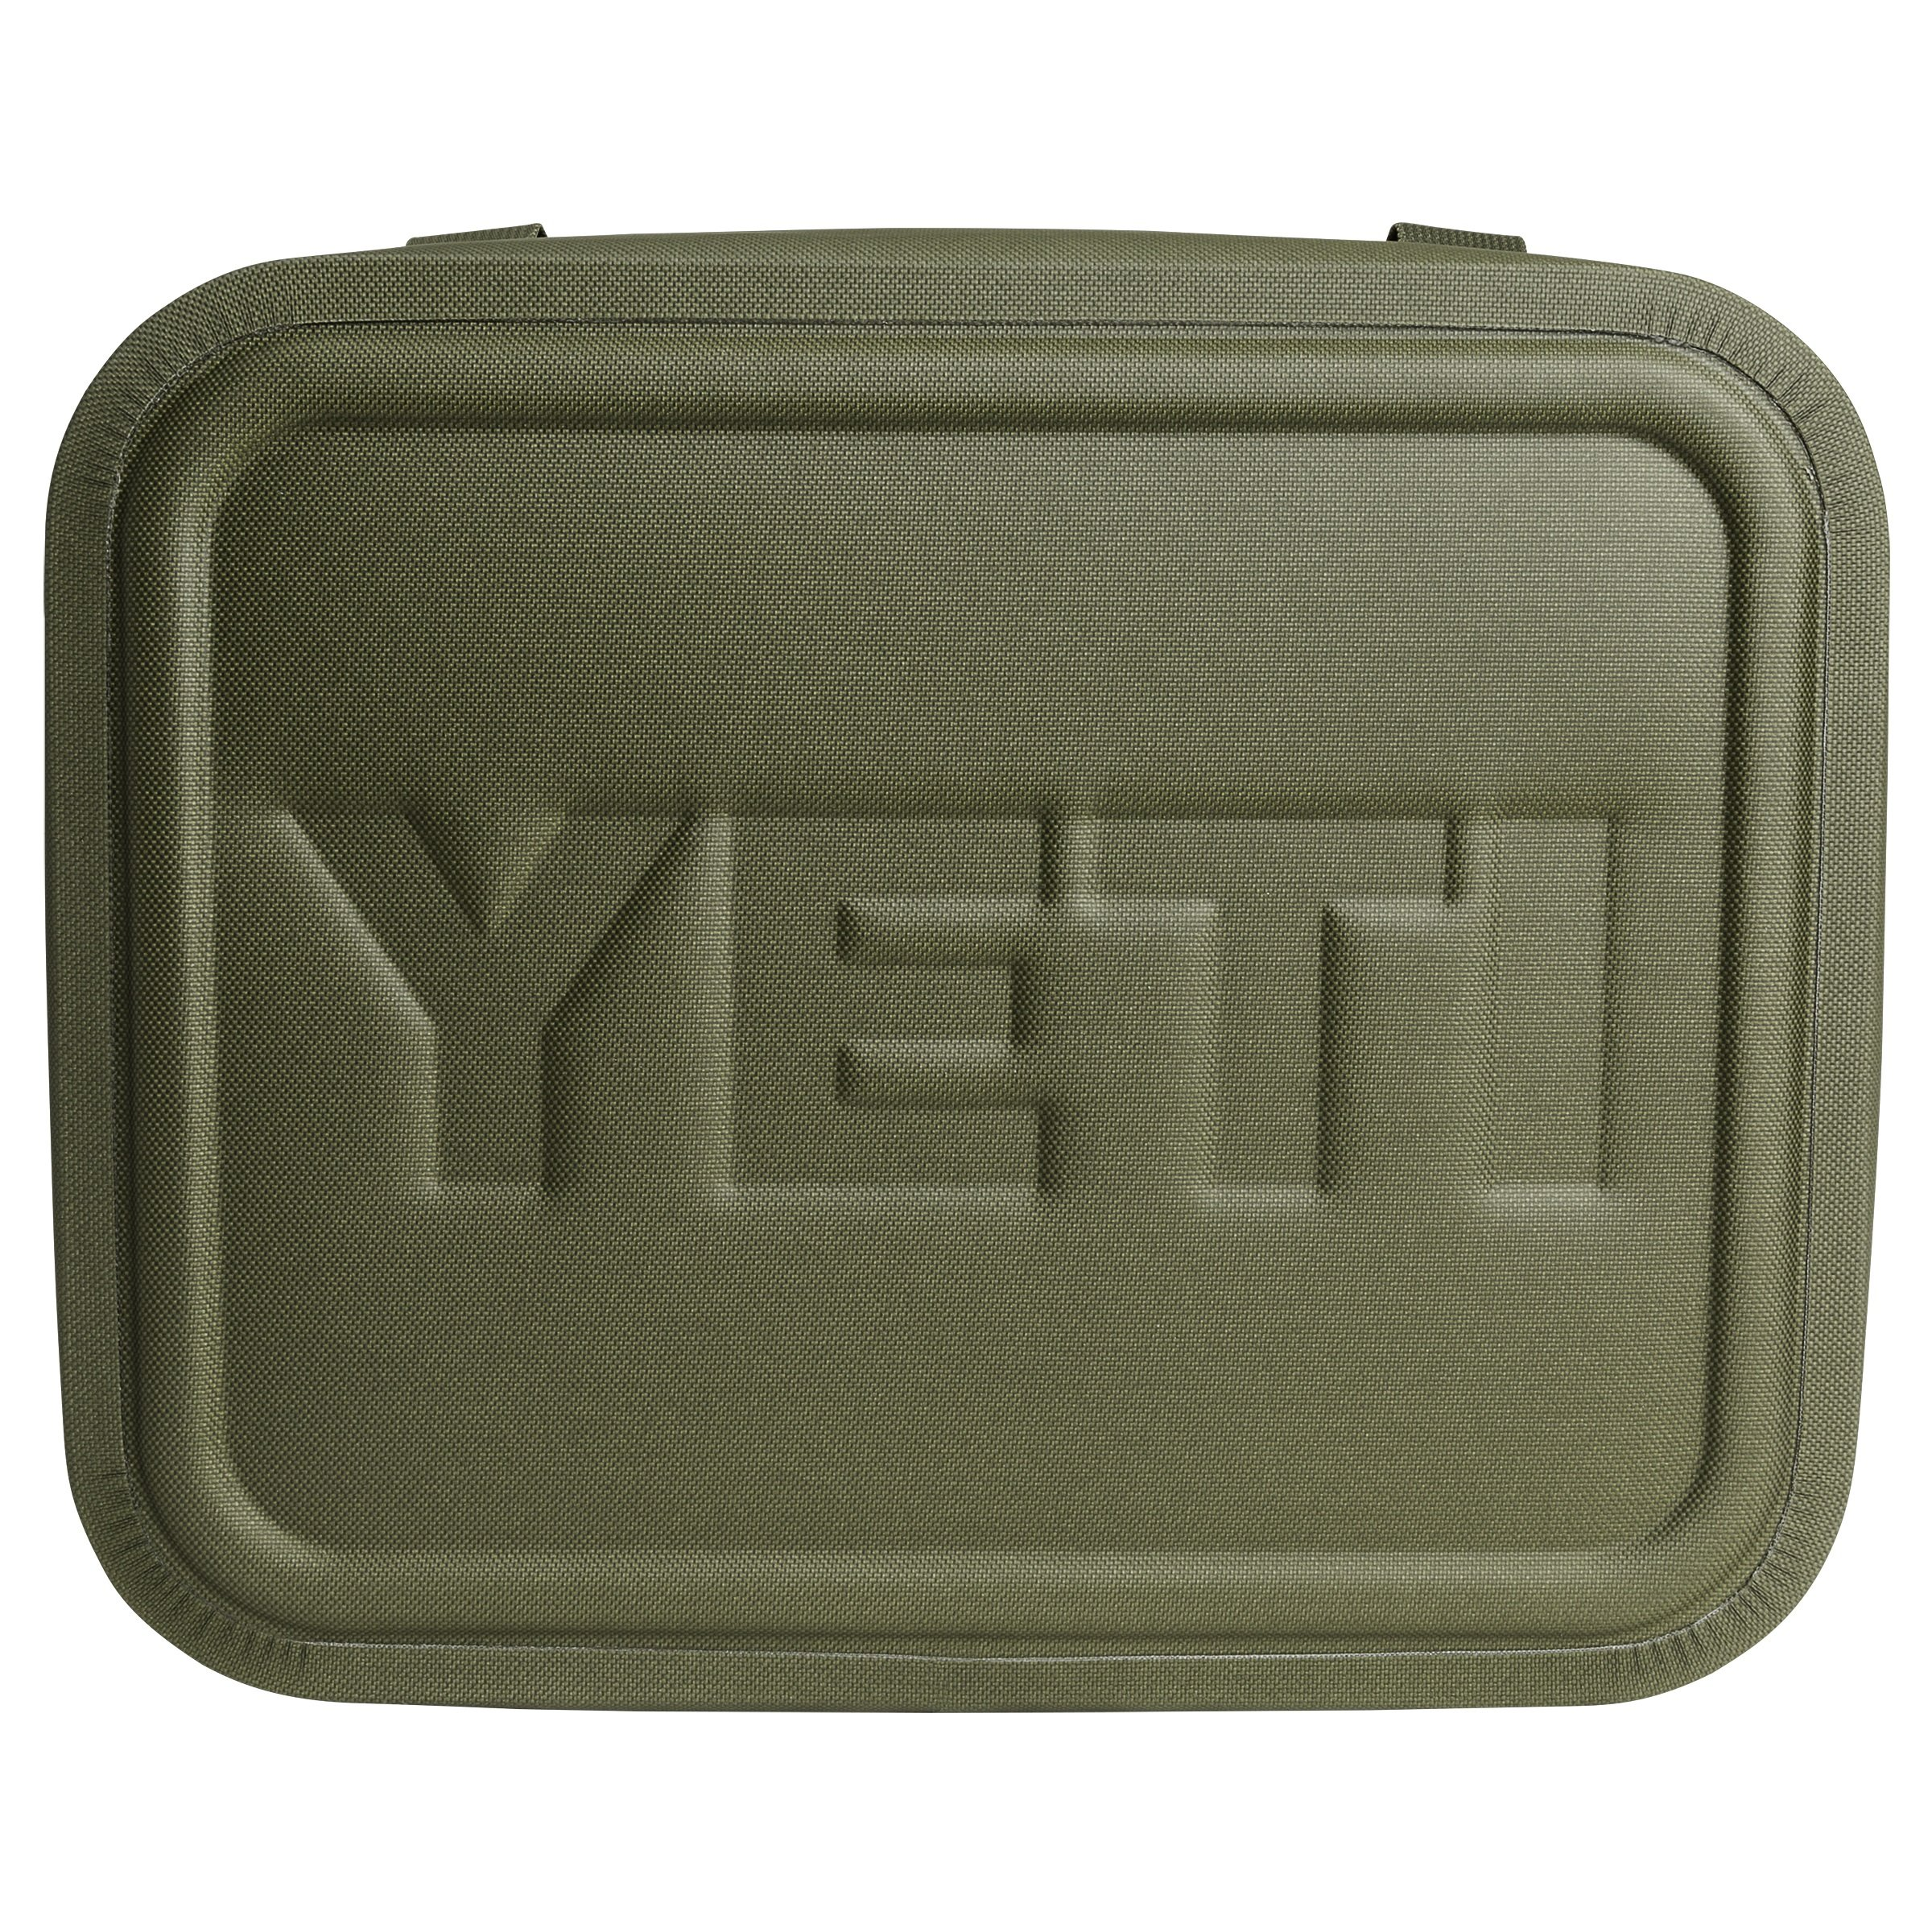 YETI Hopper Flip 12 Portable Cooler with Top Handle, Field Tan by YETI (Image #6)